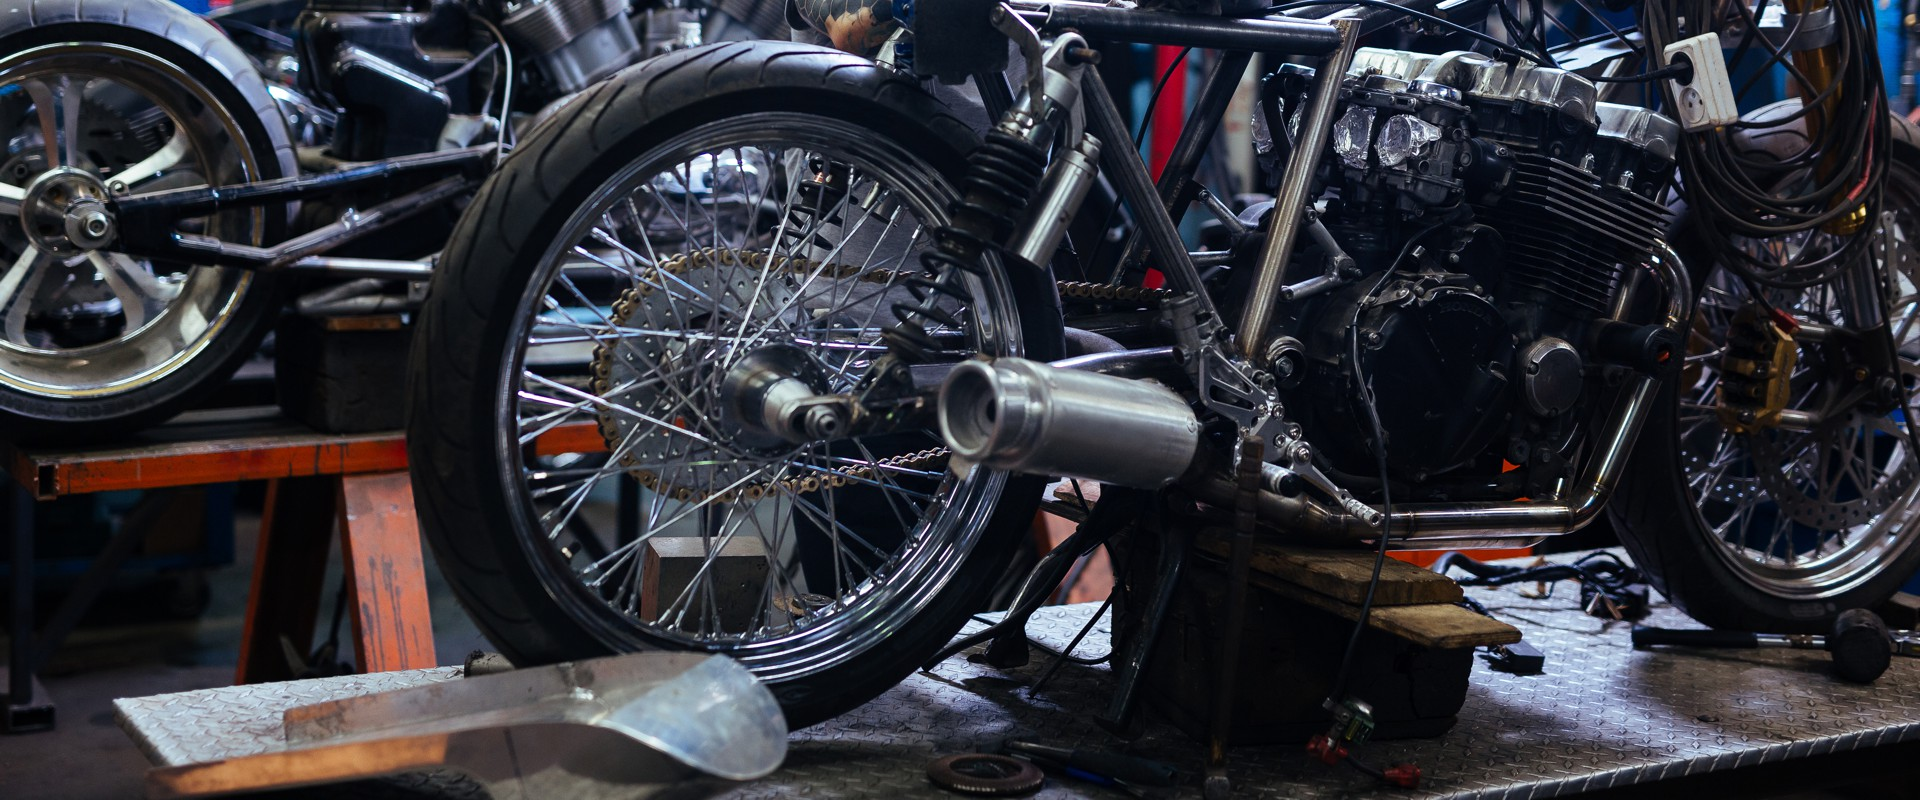 Motorcycle and Scooter Servicing and Repairs